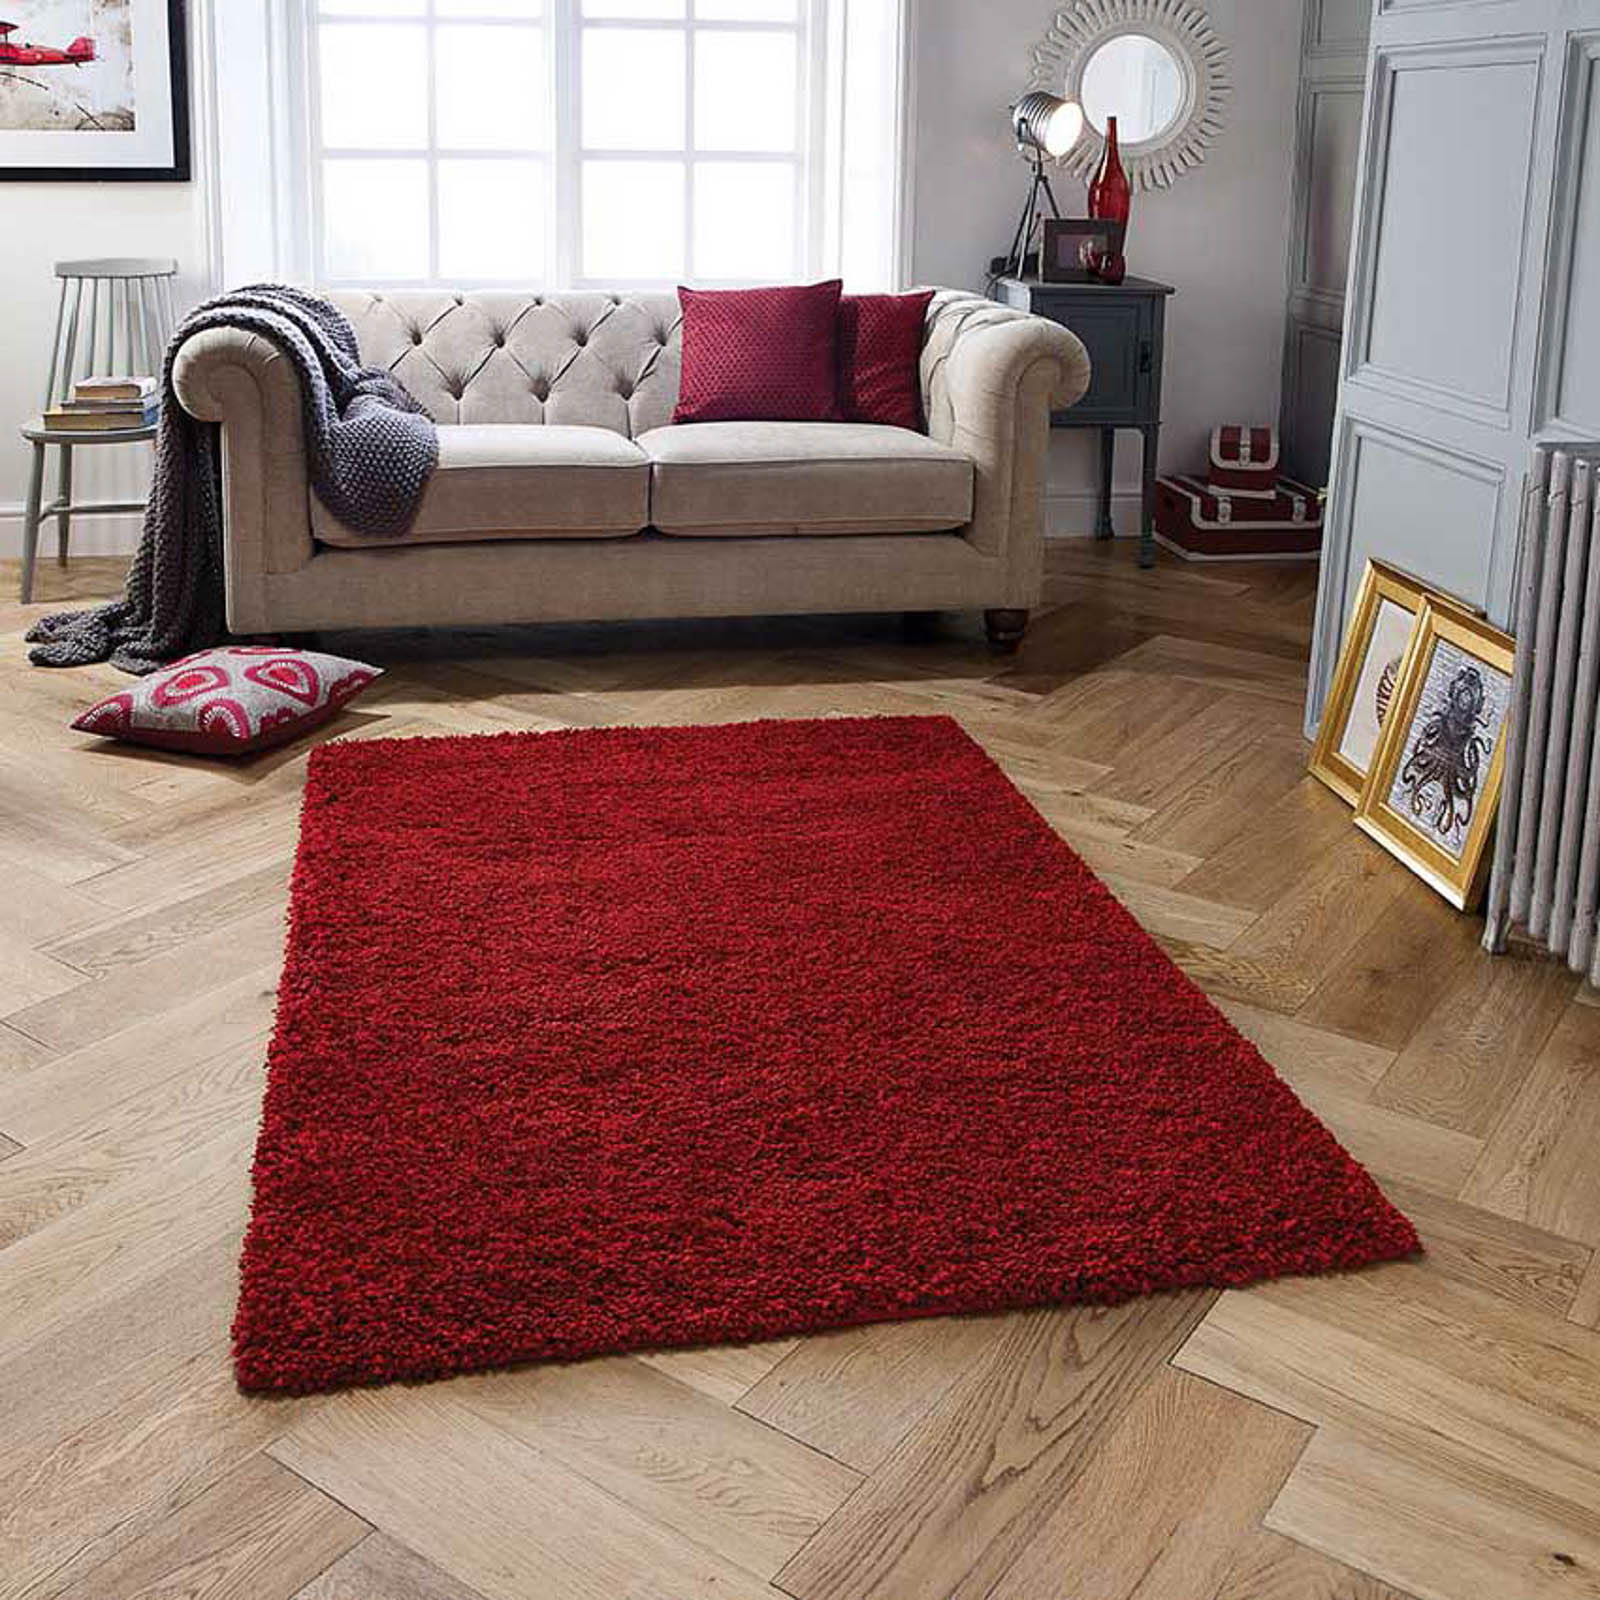 Harmony Shaggy Rugs in Red